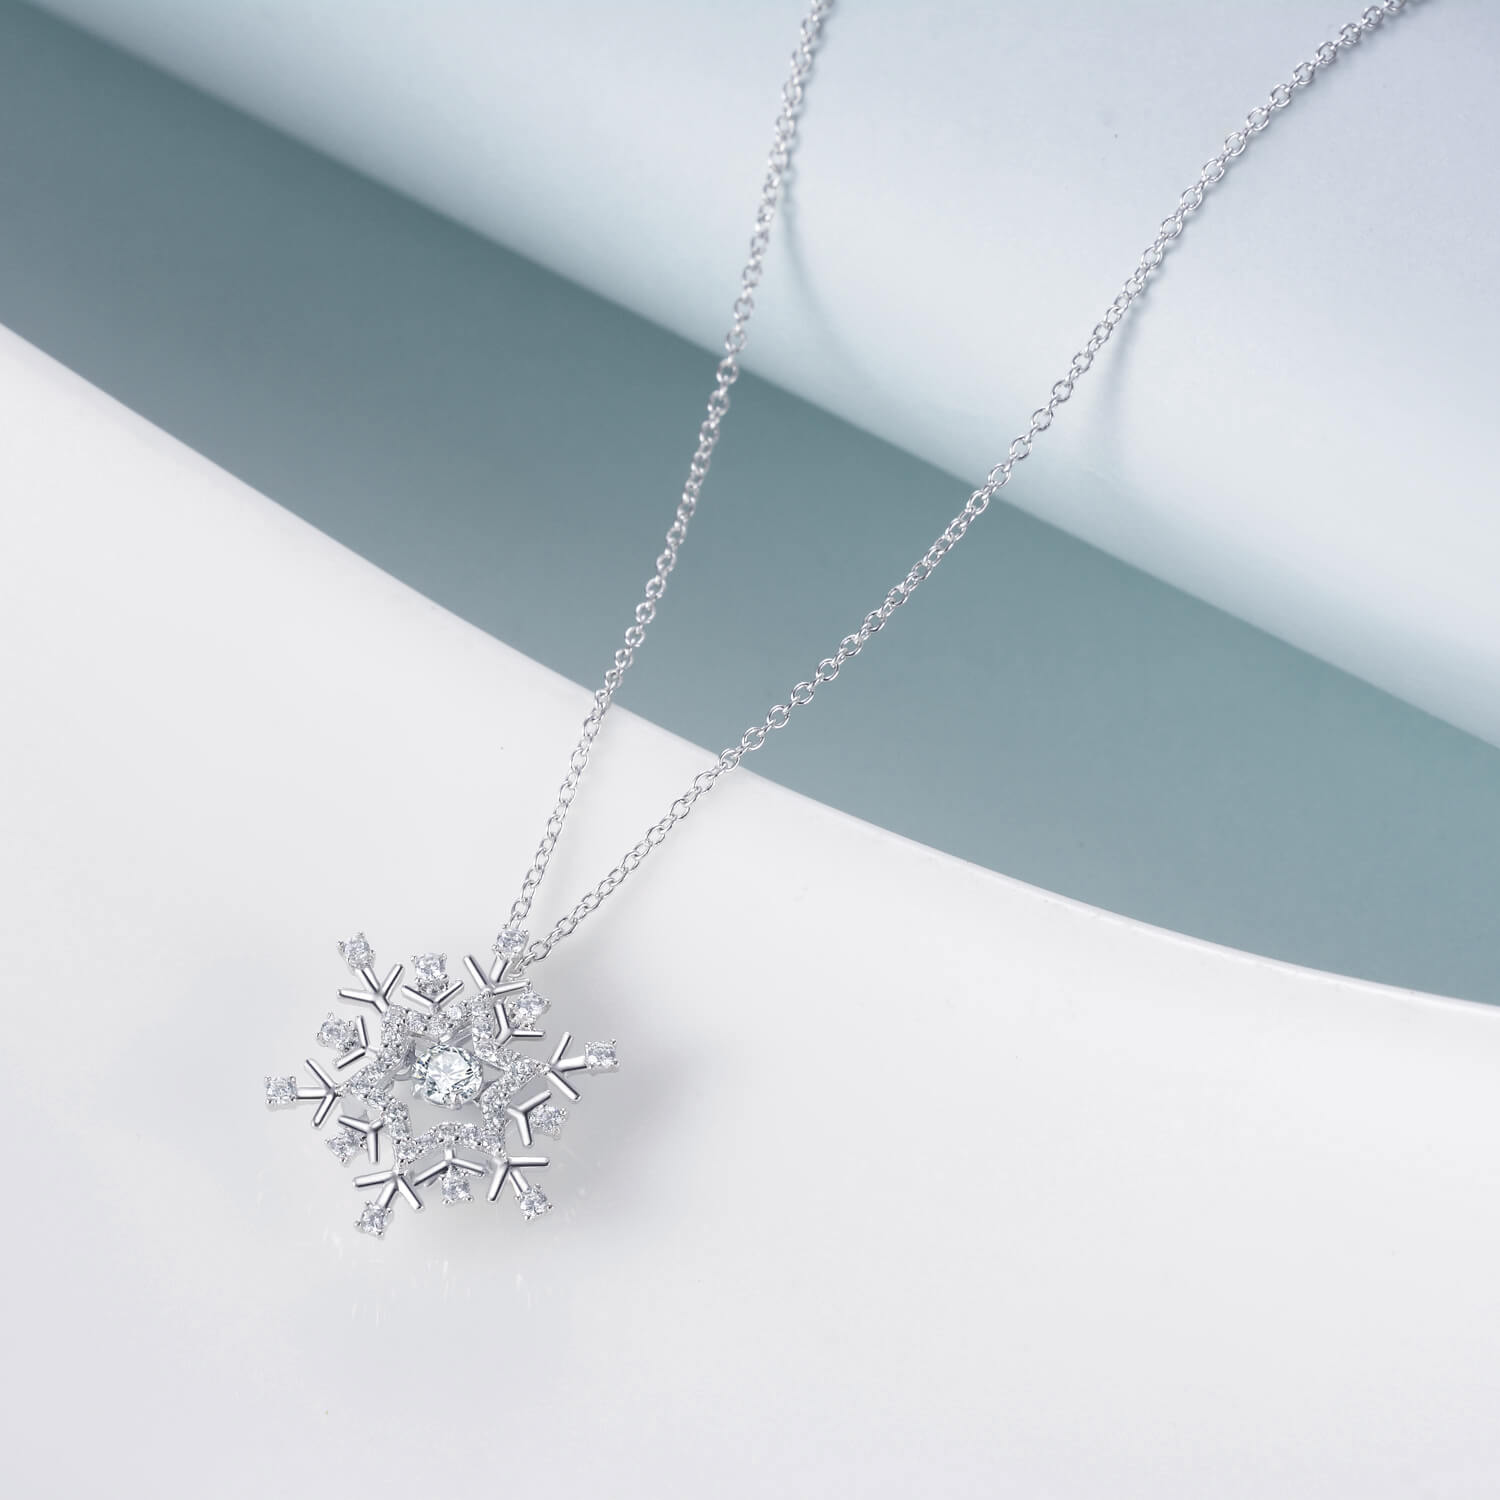 925 Sterling Silver Snowflake Necklace With Cubic Zirconia Christmas Gift - onlyone